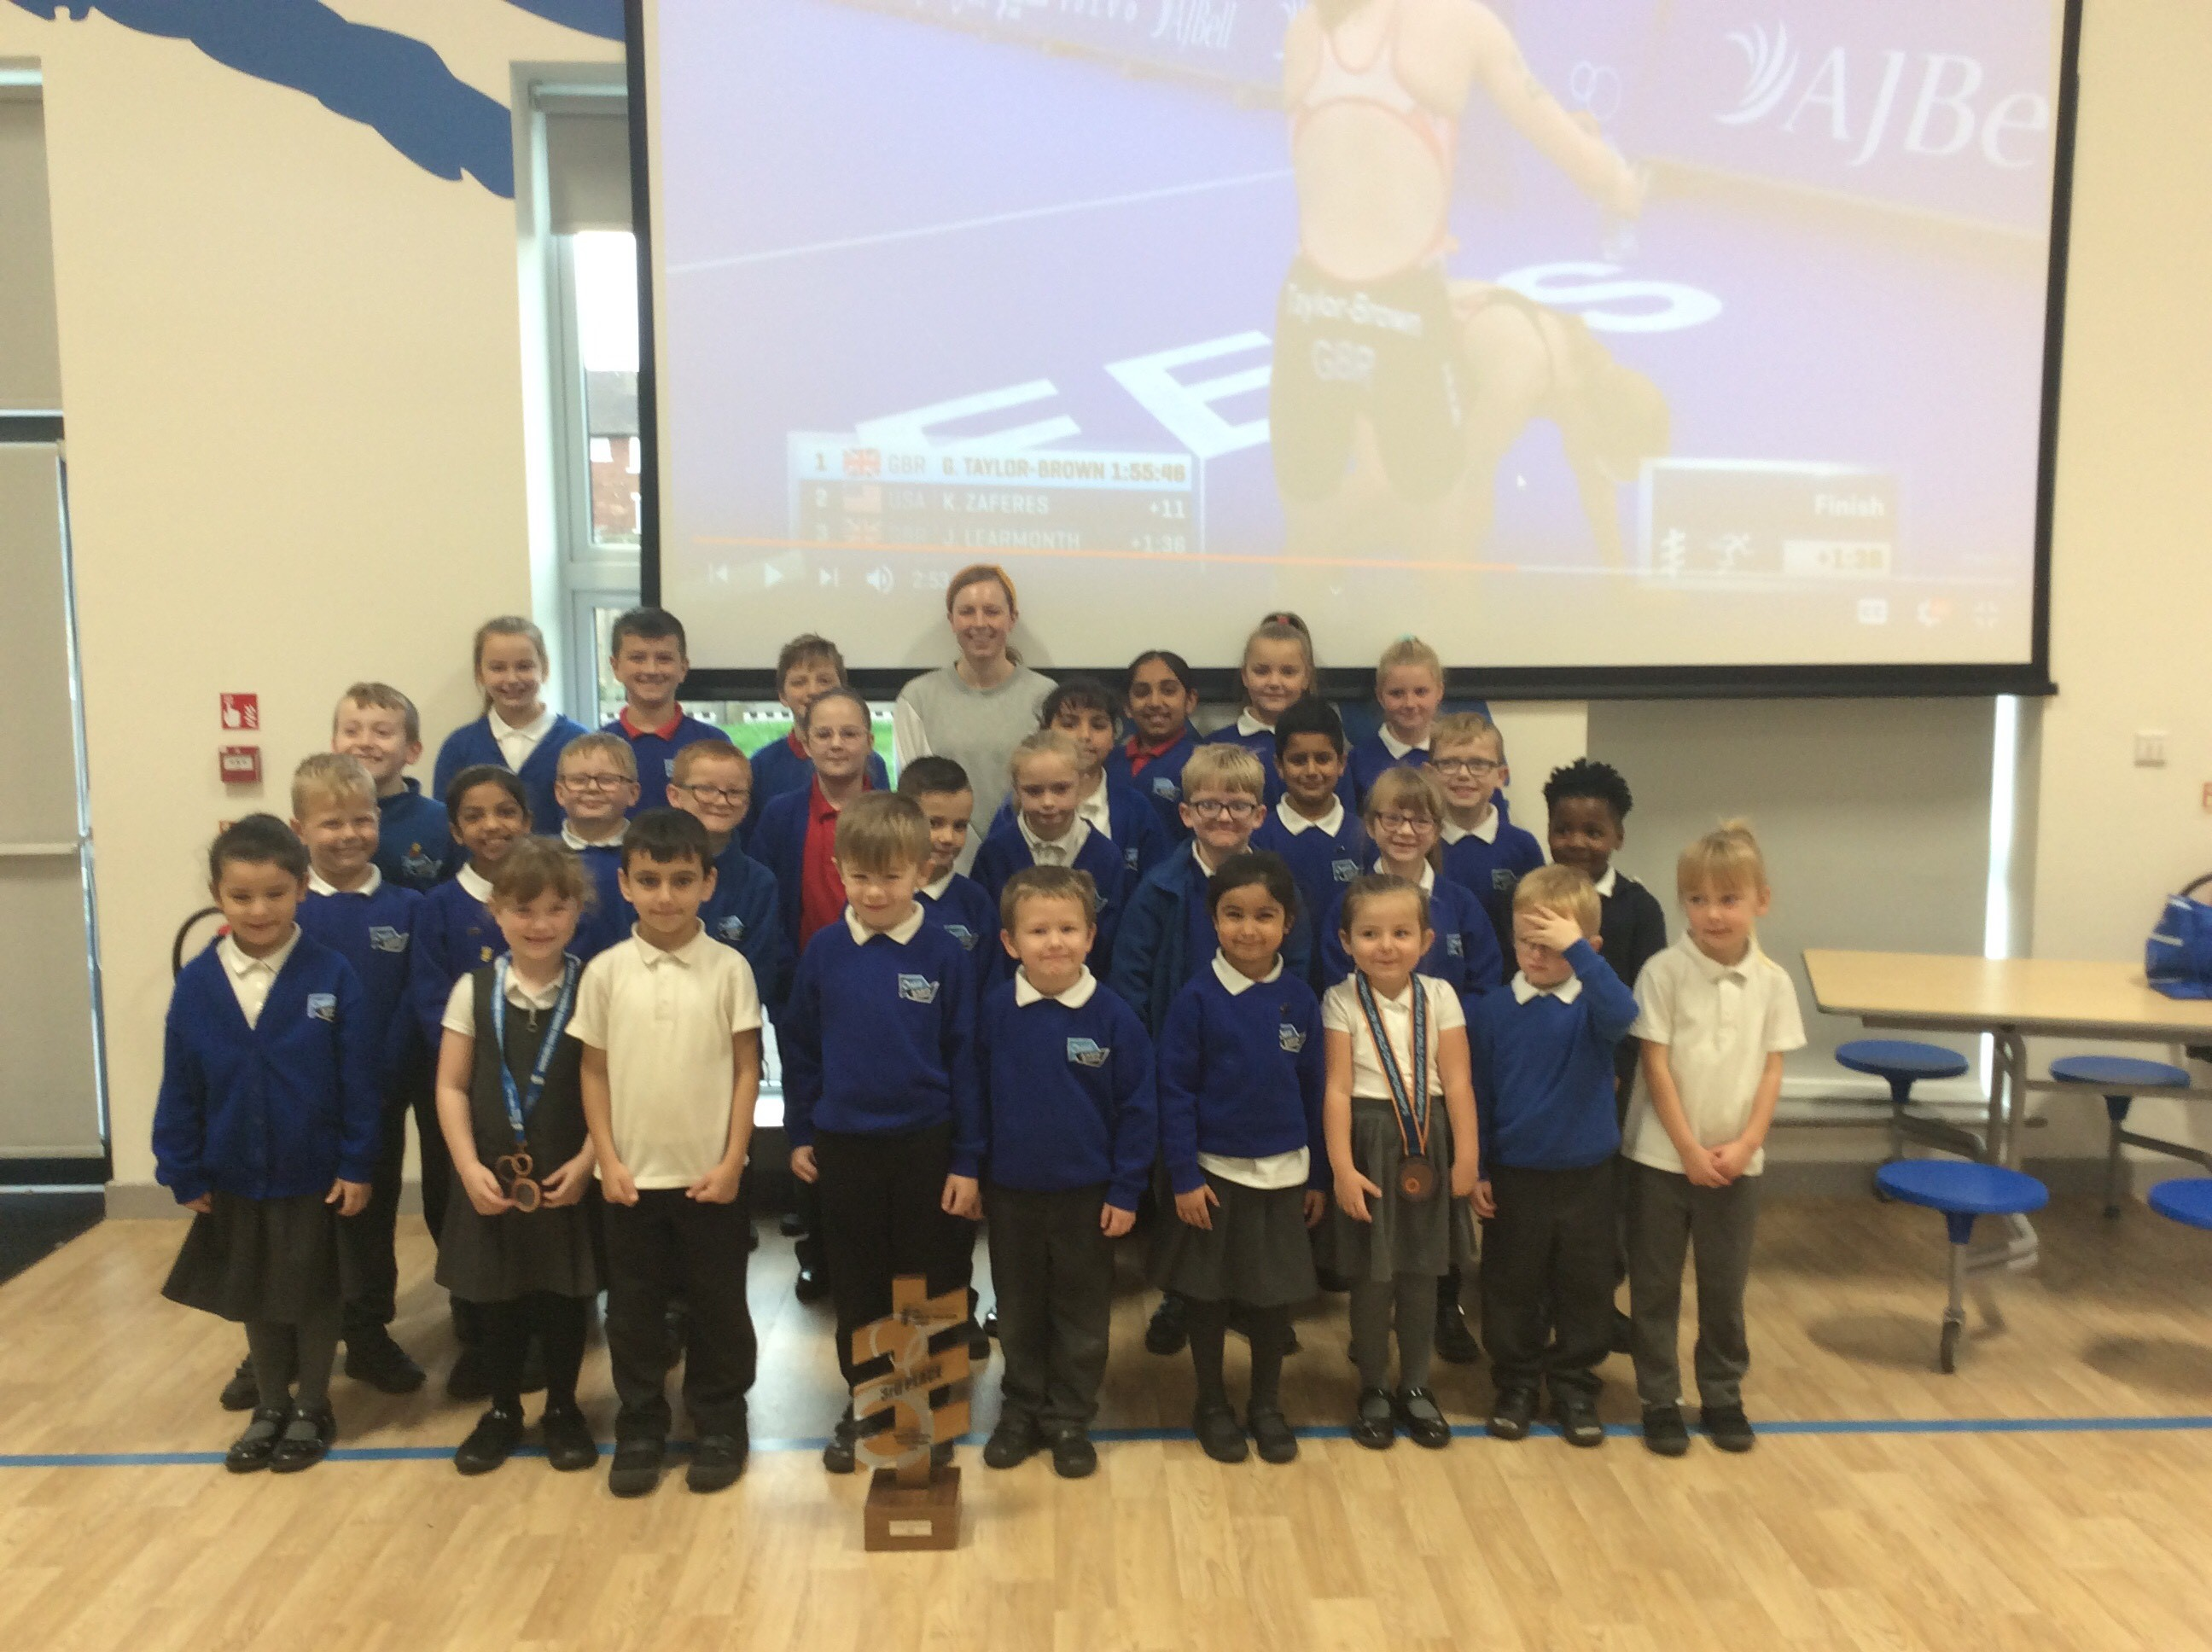 World triathlete visits Oasis Academy Broadoak and inspires the next generation